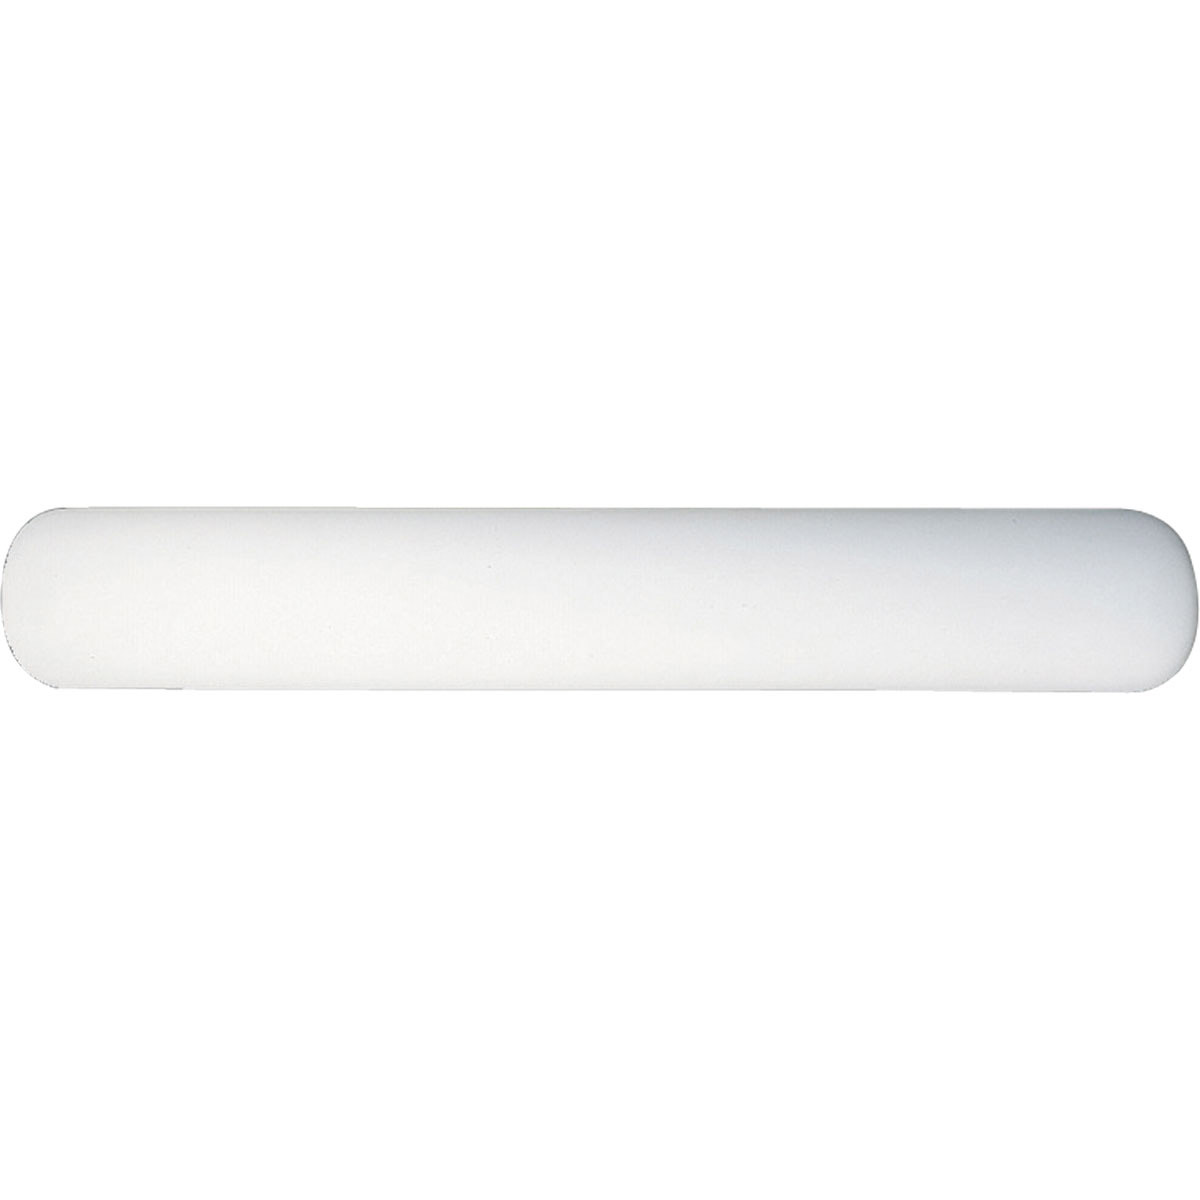 Vanity Fluorescent Lights Bathroom : Progress Lighting P7115-60EB Linear Fluorescent Bath Energy Efficient Vanity Light